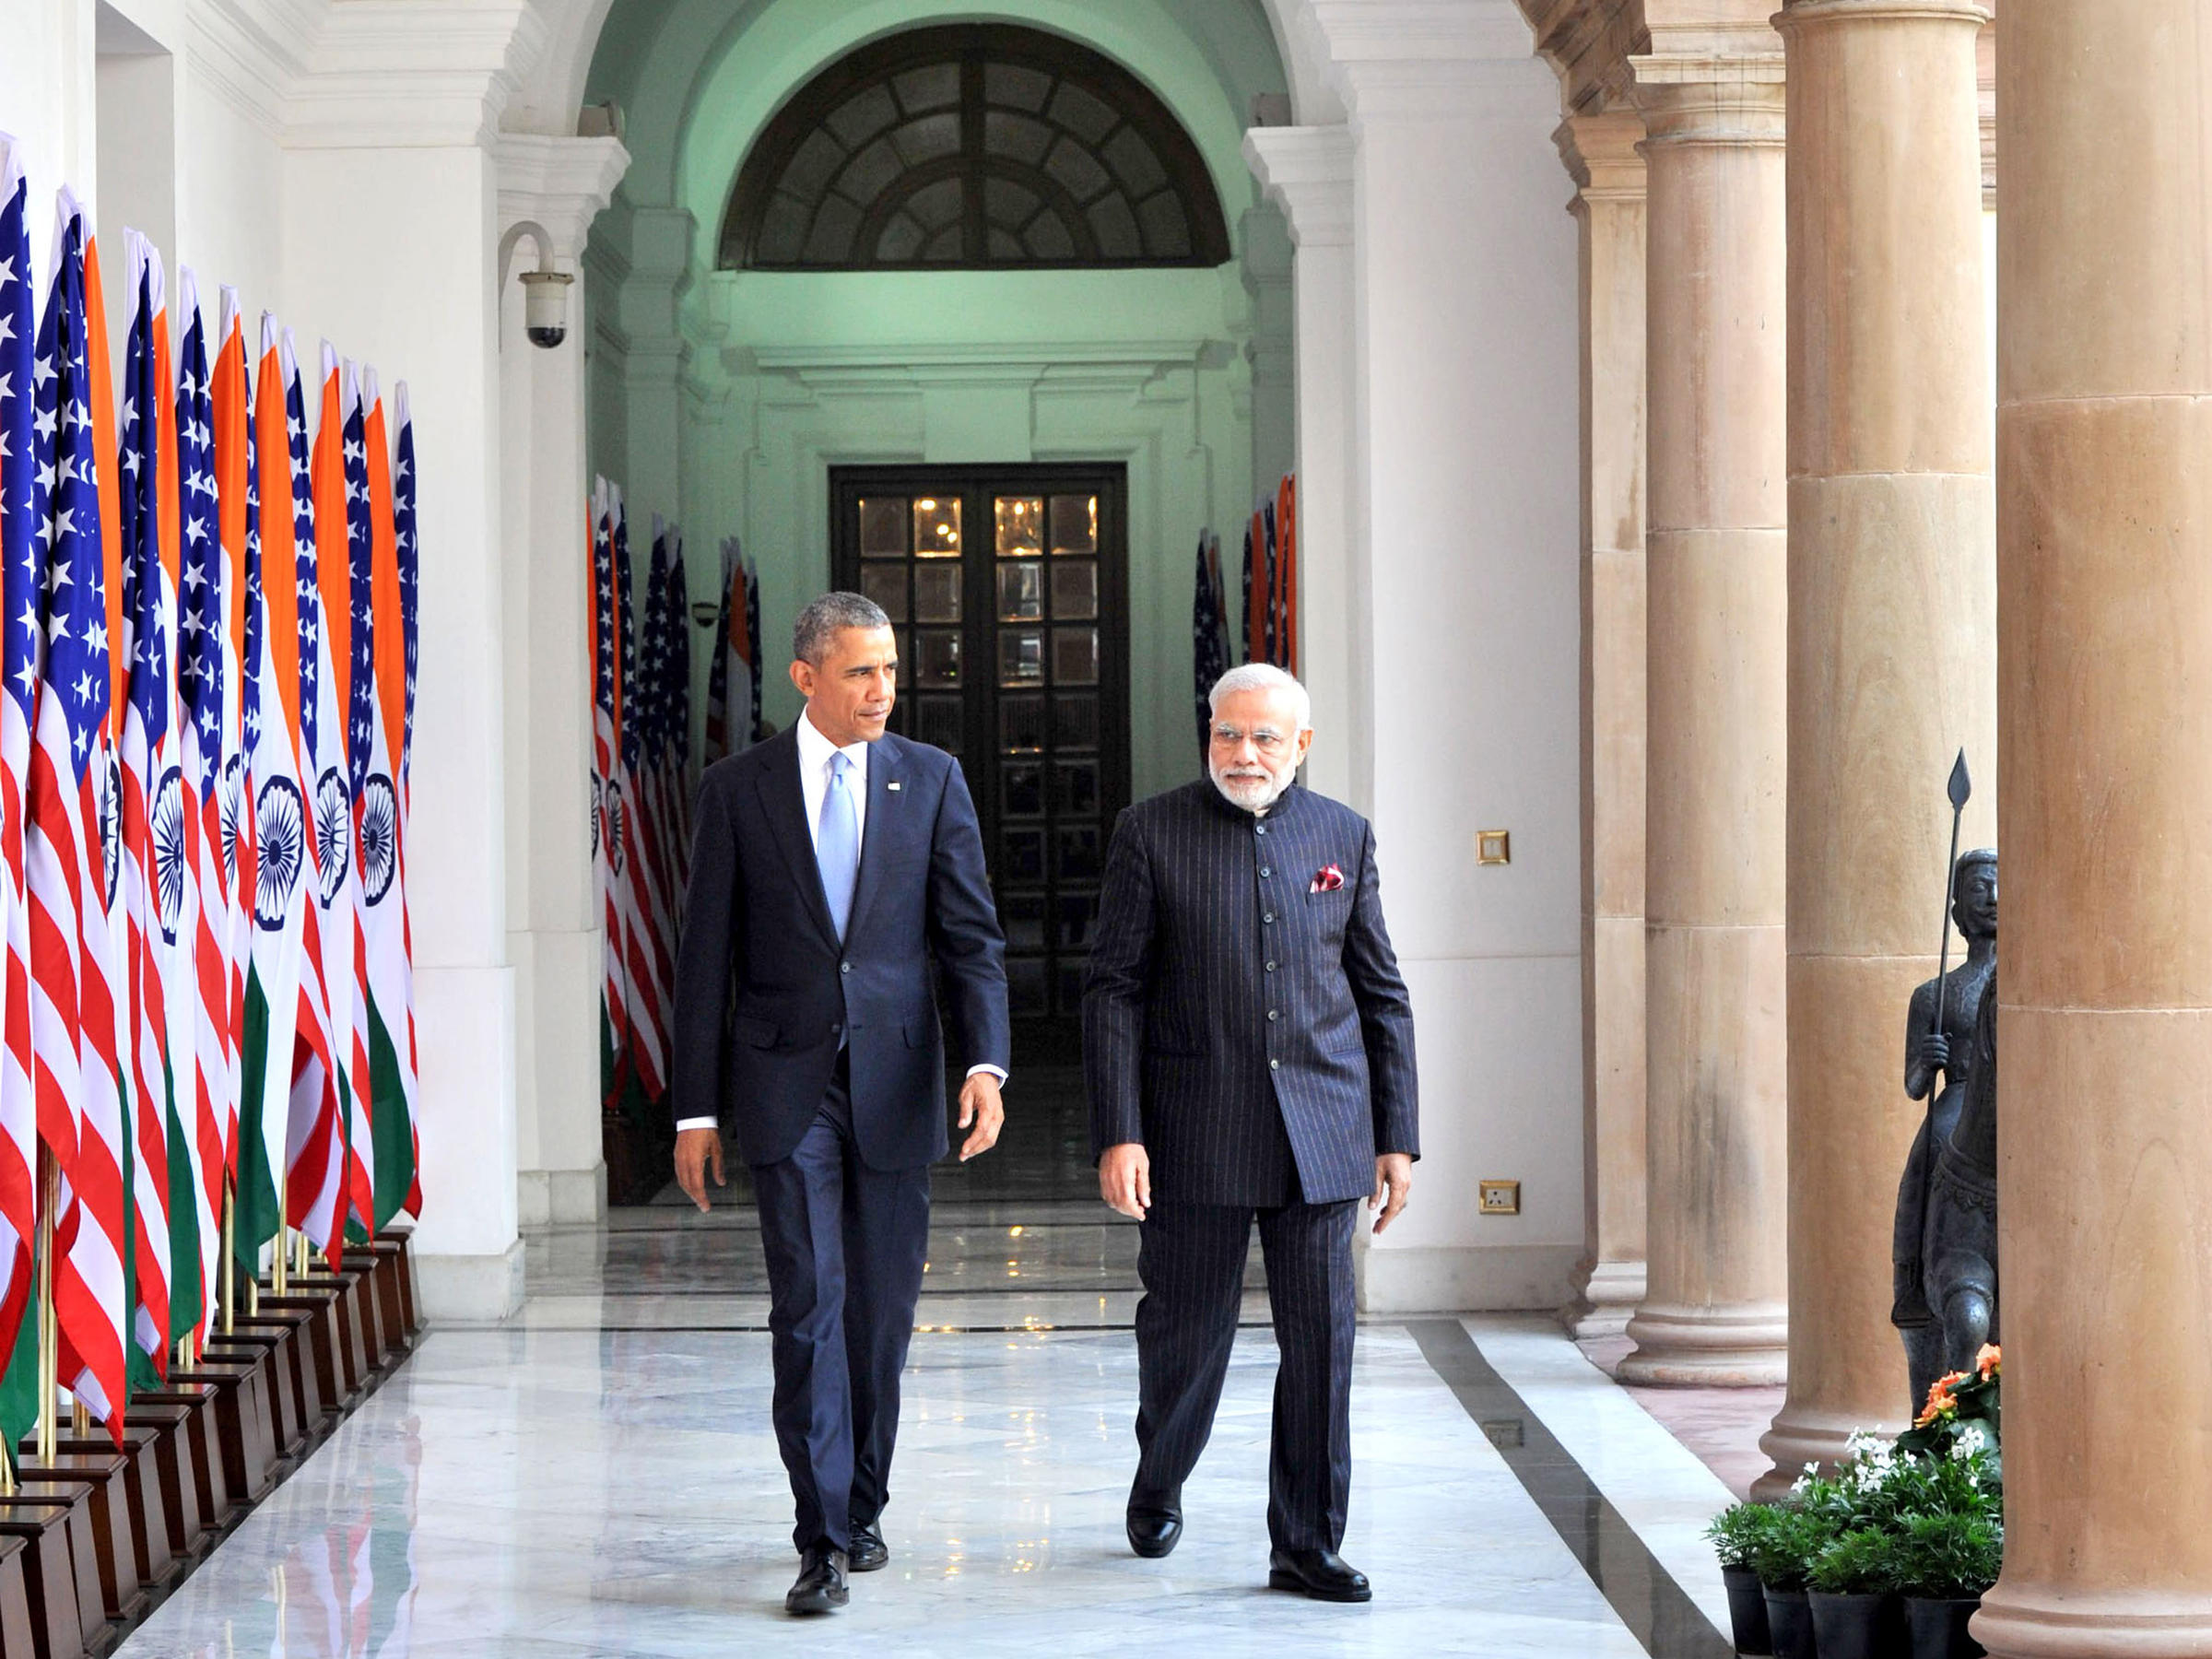 U S  And India Announce New Ties On First Day Of Obama's